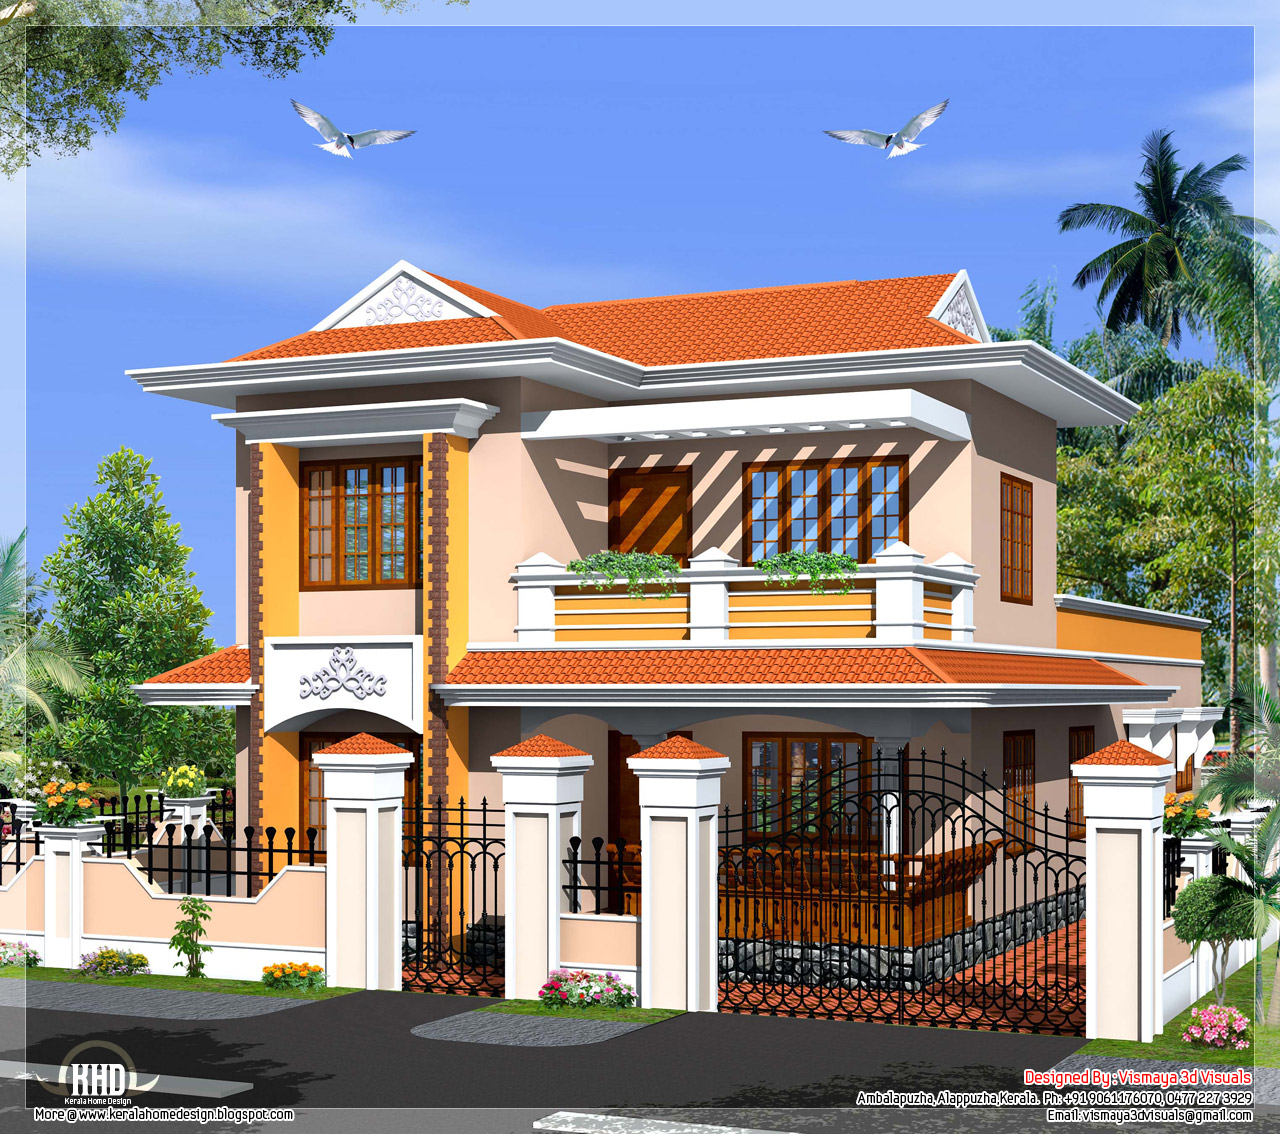 Kerala model villa in 2110 in square feet house design plans for New model houses in kerala